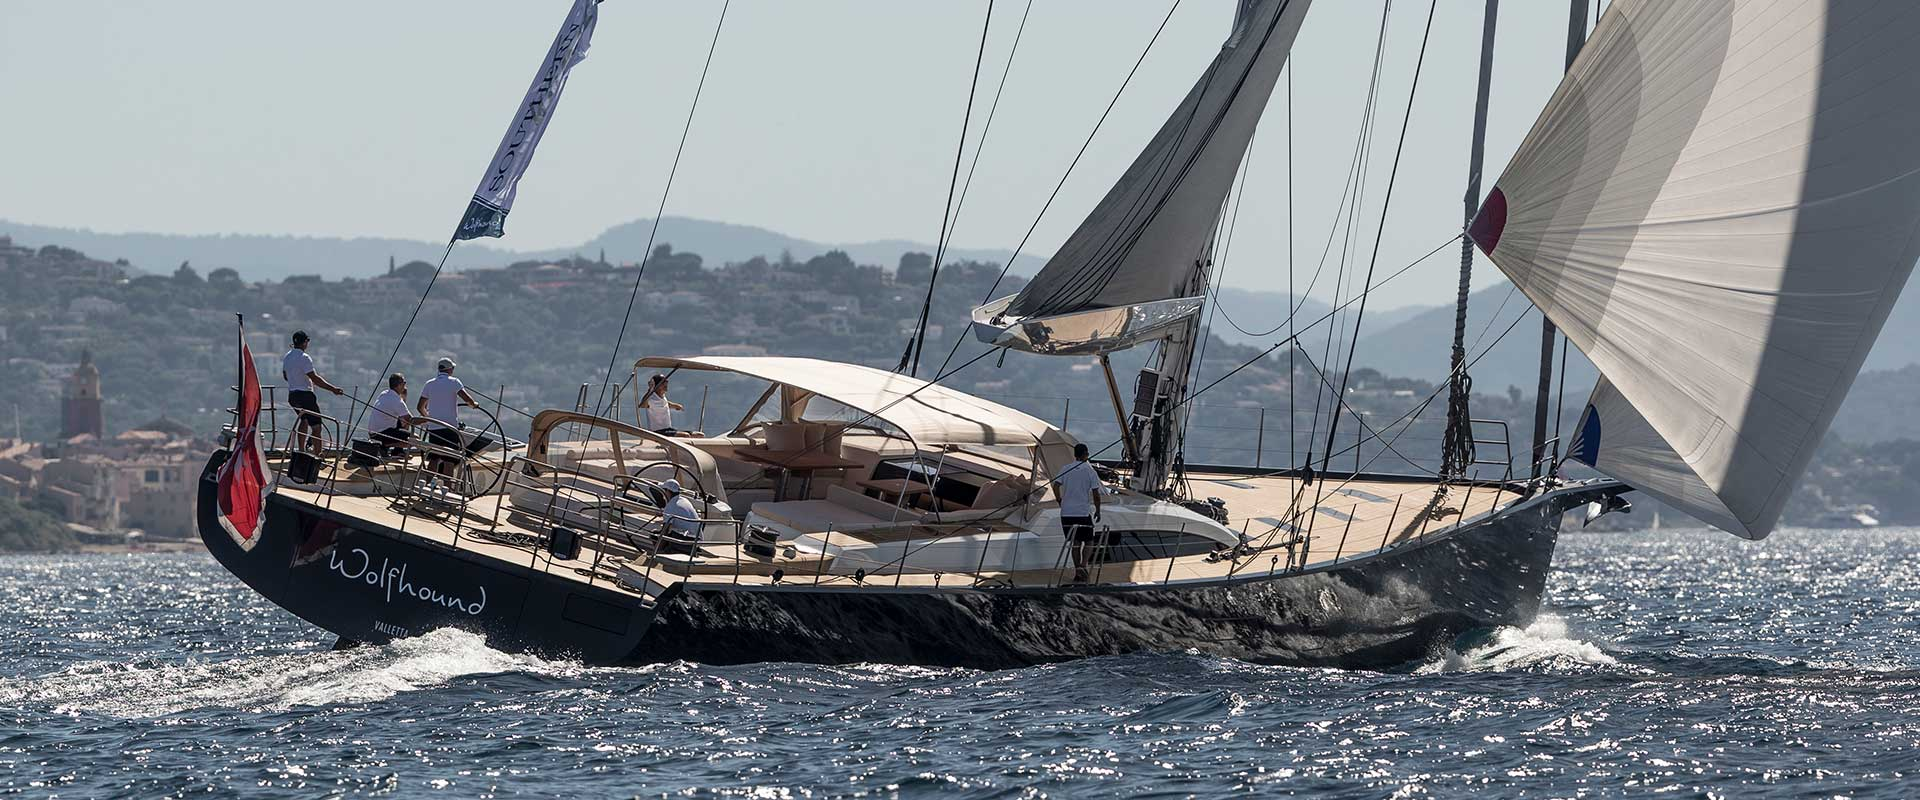 SW105 Wolfhound Southern Wind Yachts